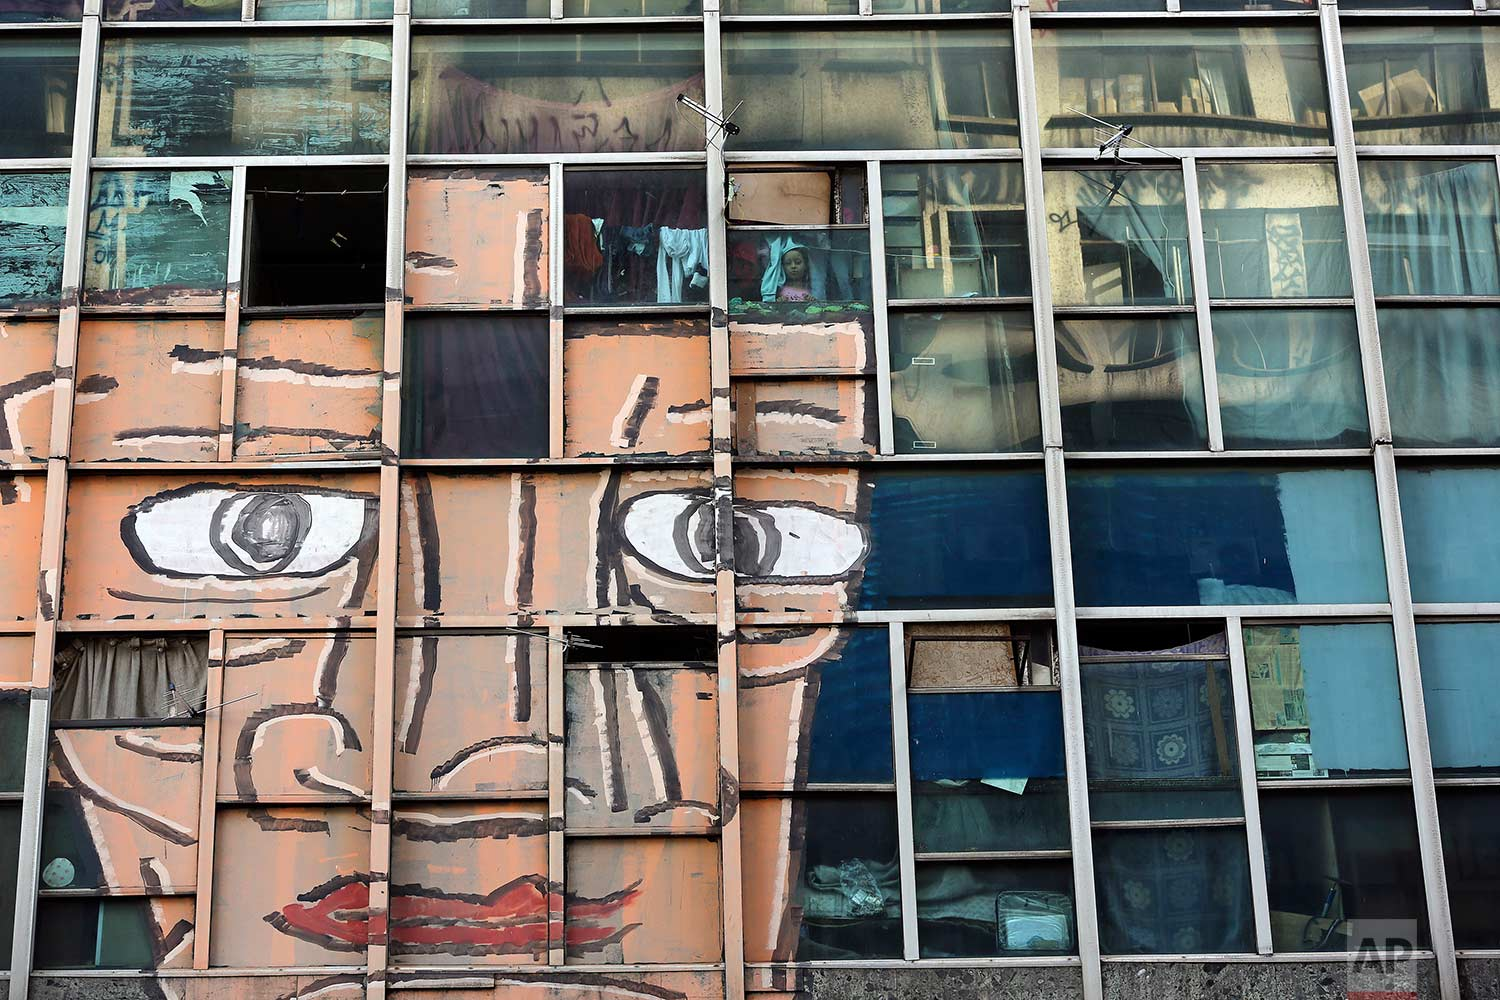 In this June 24, 2017 photo, a girl looks out from her window at the former Federal Police headquarters building in downtown  Sao Paulo, Brazil. (AP Photo/Andre Penner)